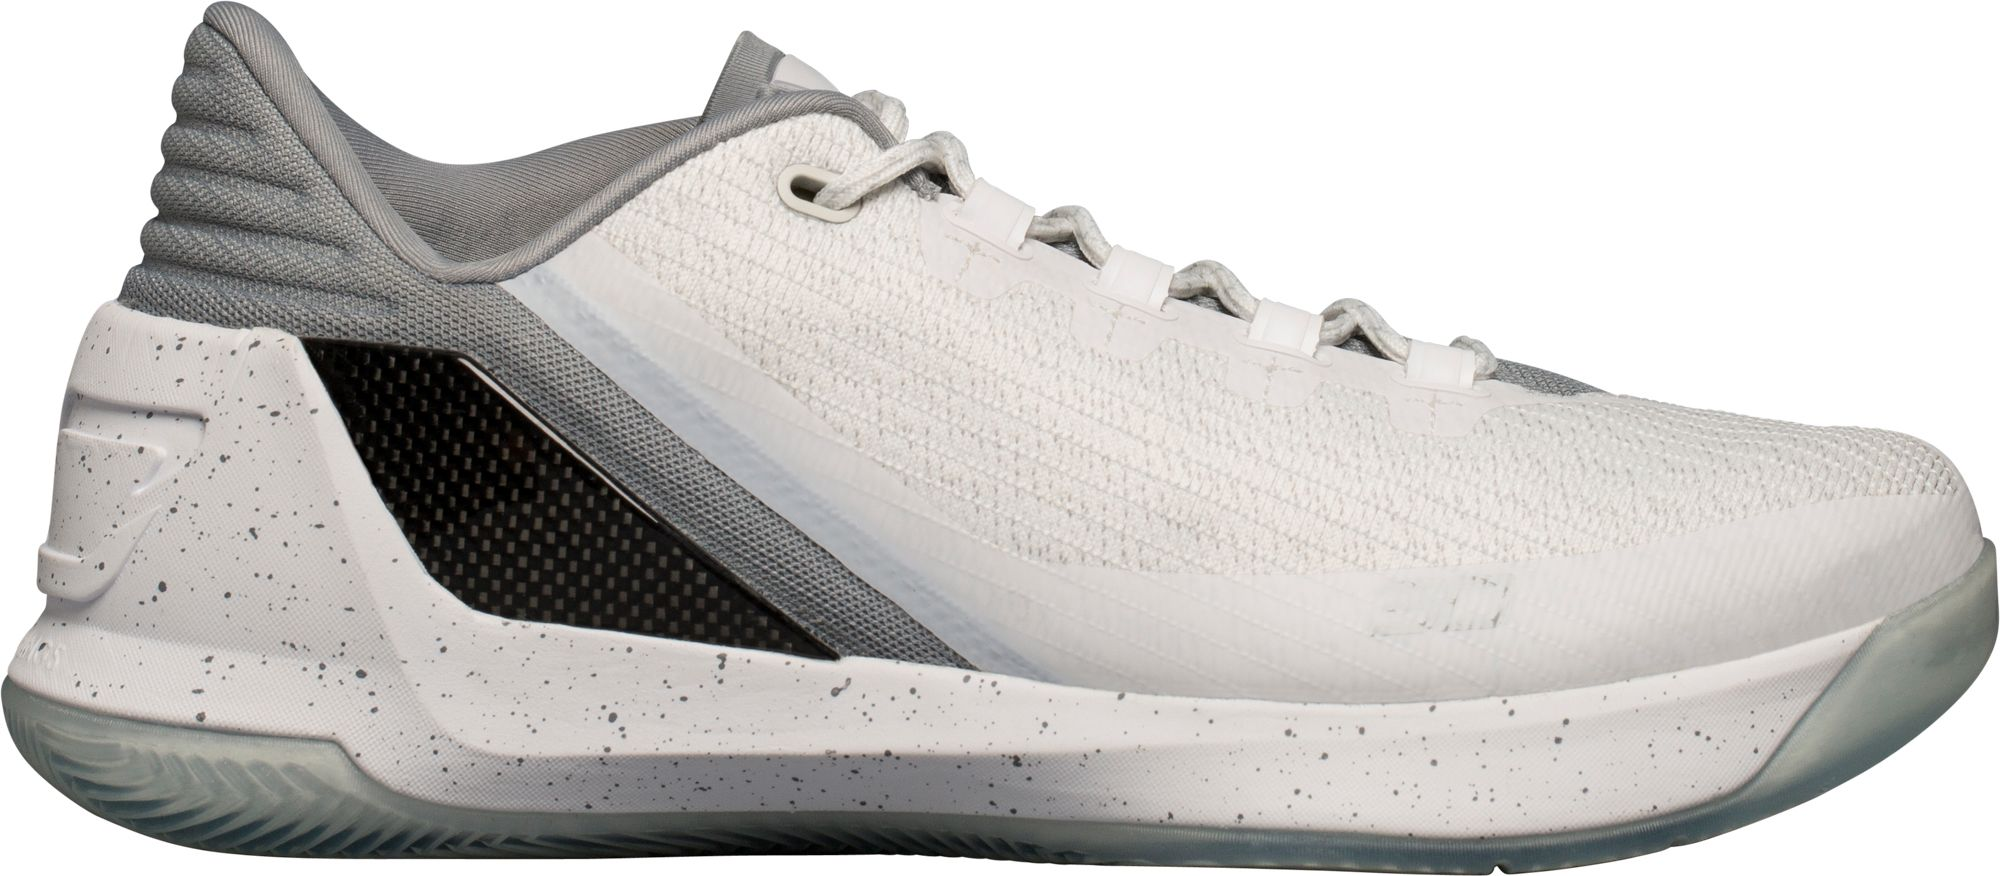 ca91fb1c8e83 Under Armour Curry 3 Low REVIEW – The Ultimate Low Top Shoe ...